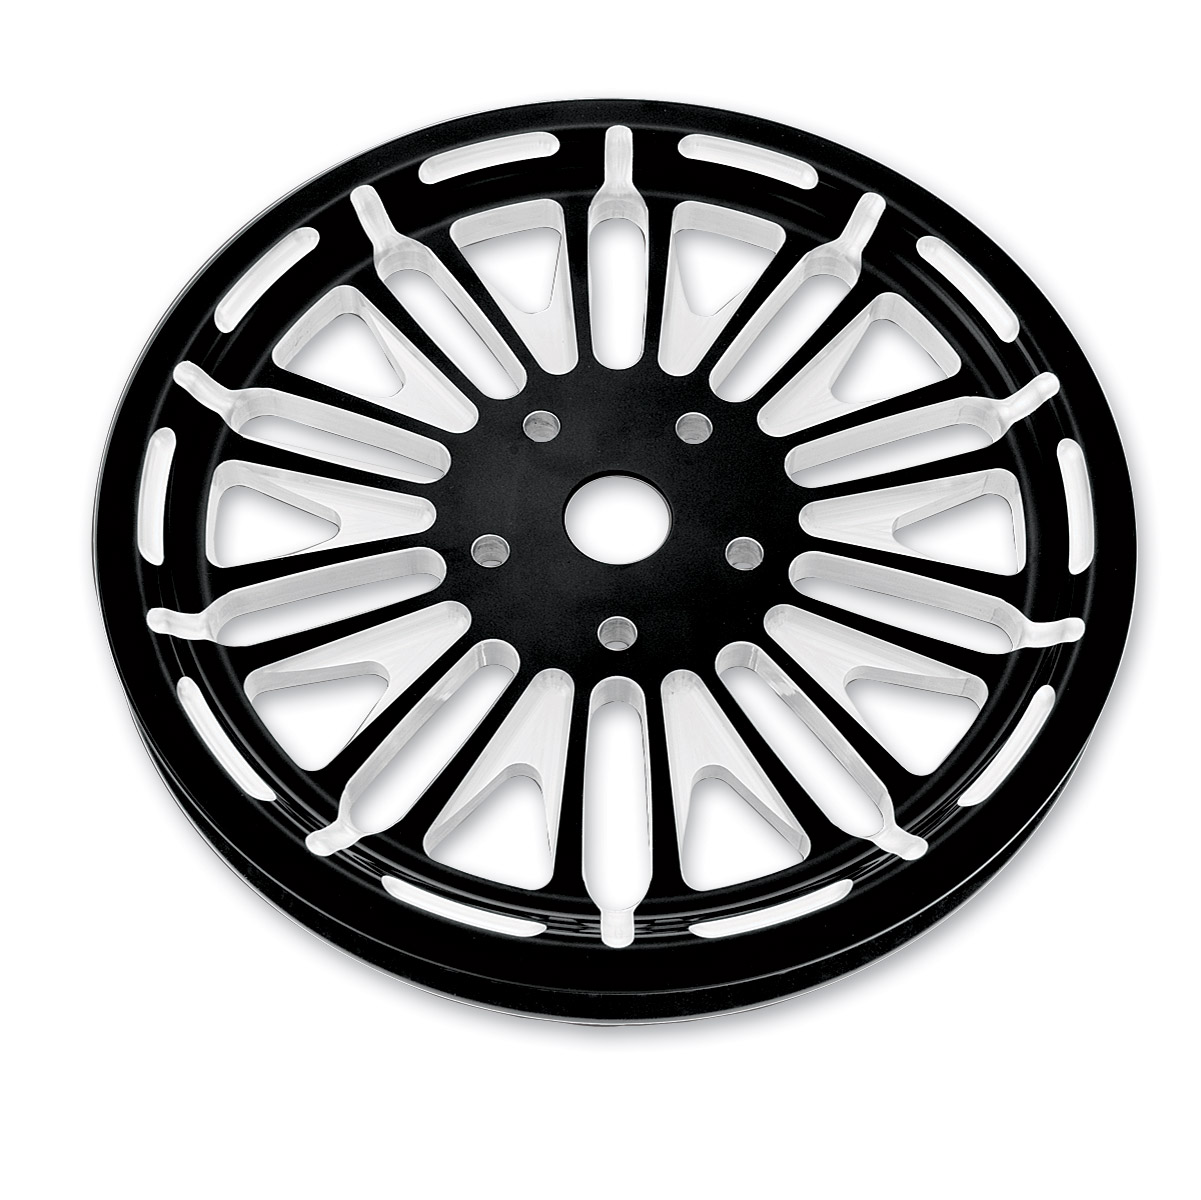 Roland Sands Design Boss Contrast Cut 66T Forged Aluminum Pulley